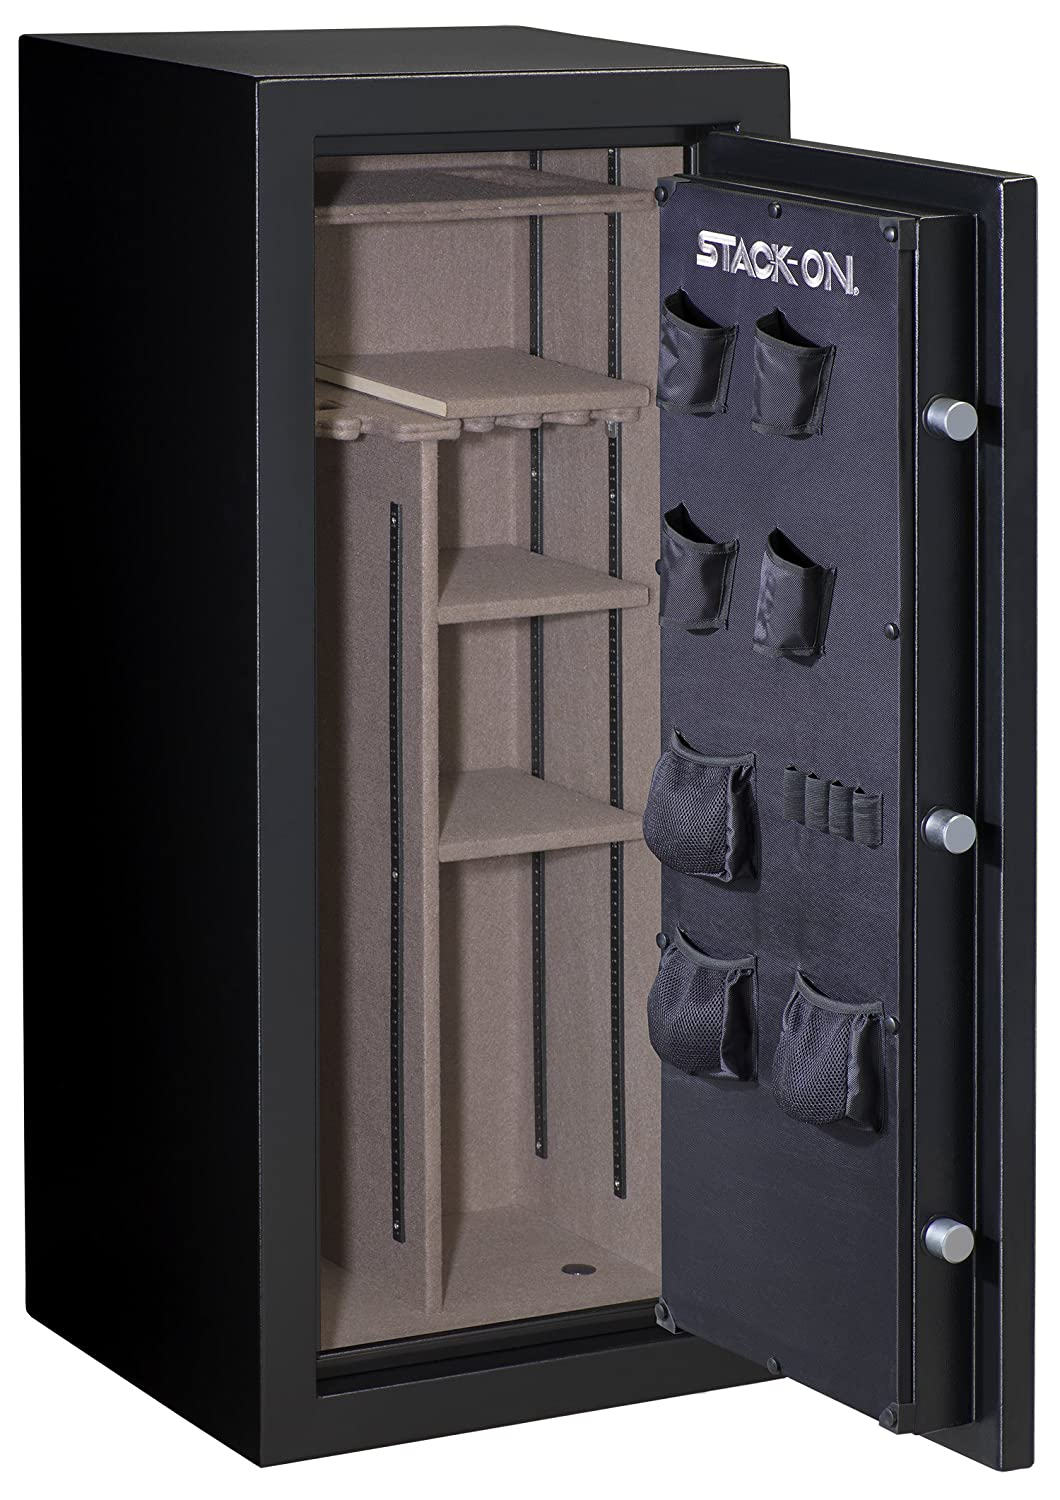 Amazon.com: Stack-On A-24-MB-E-S Armorguard 24-Gun Safe with ...